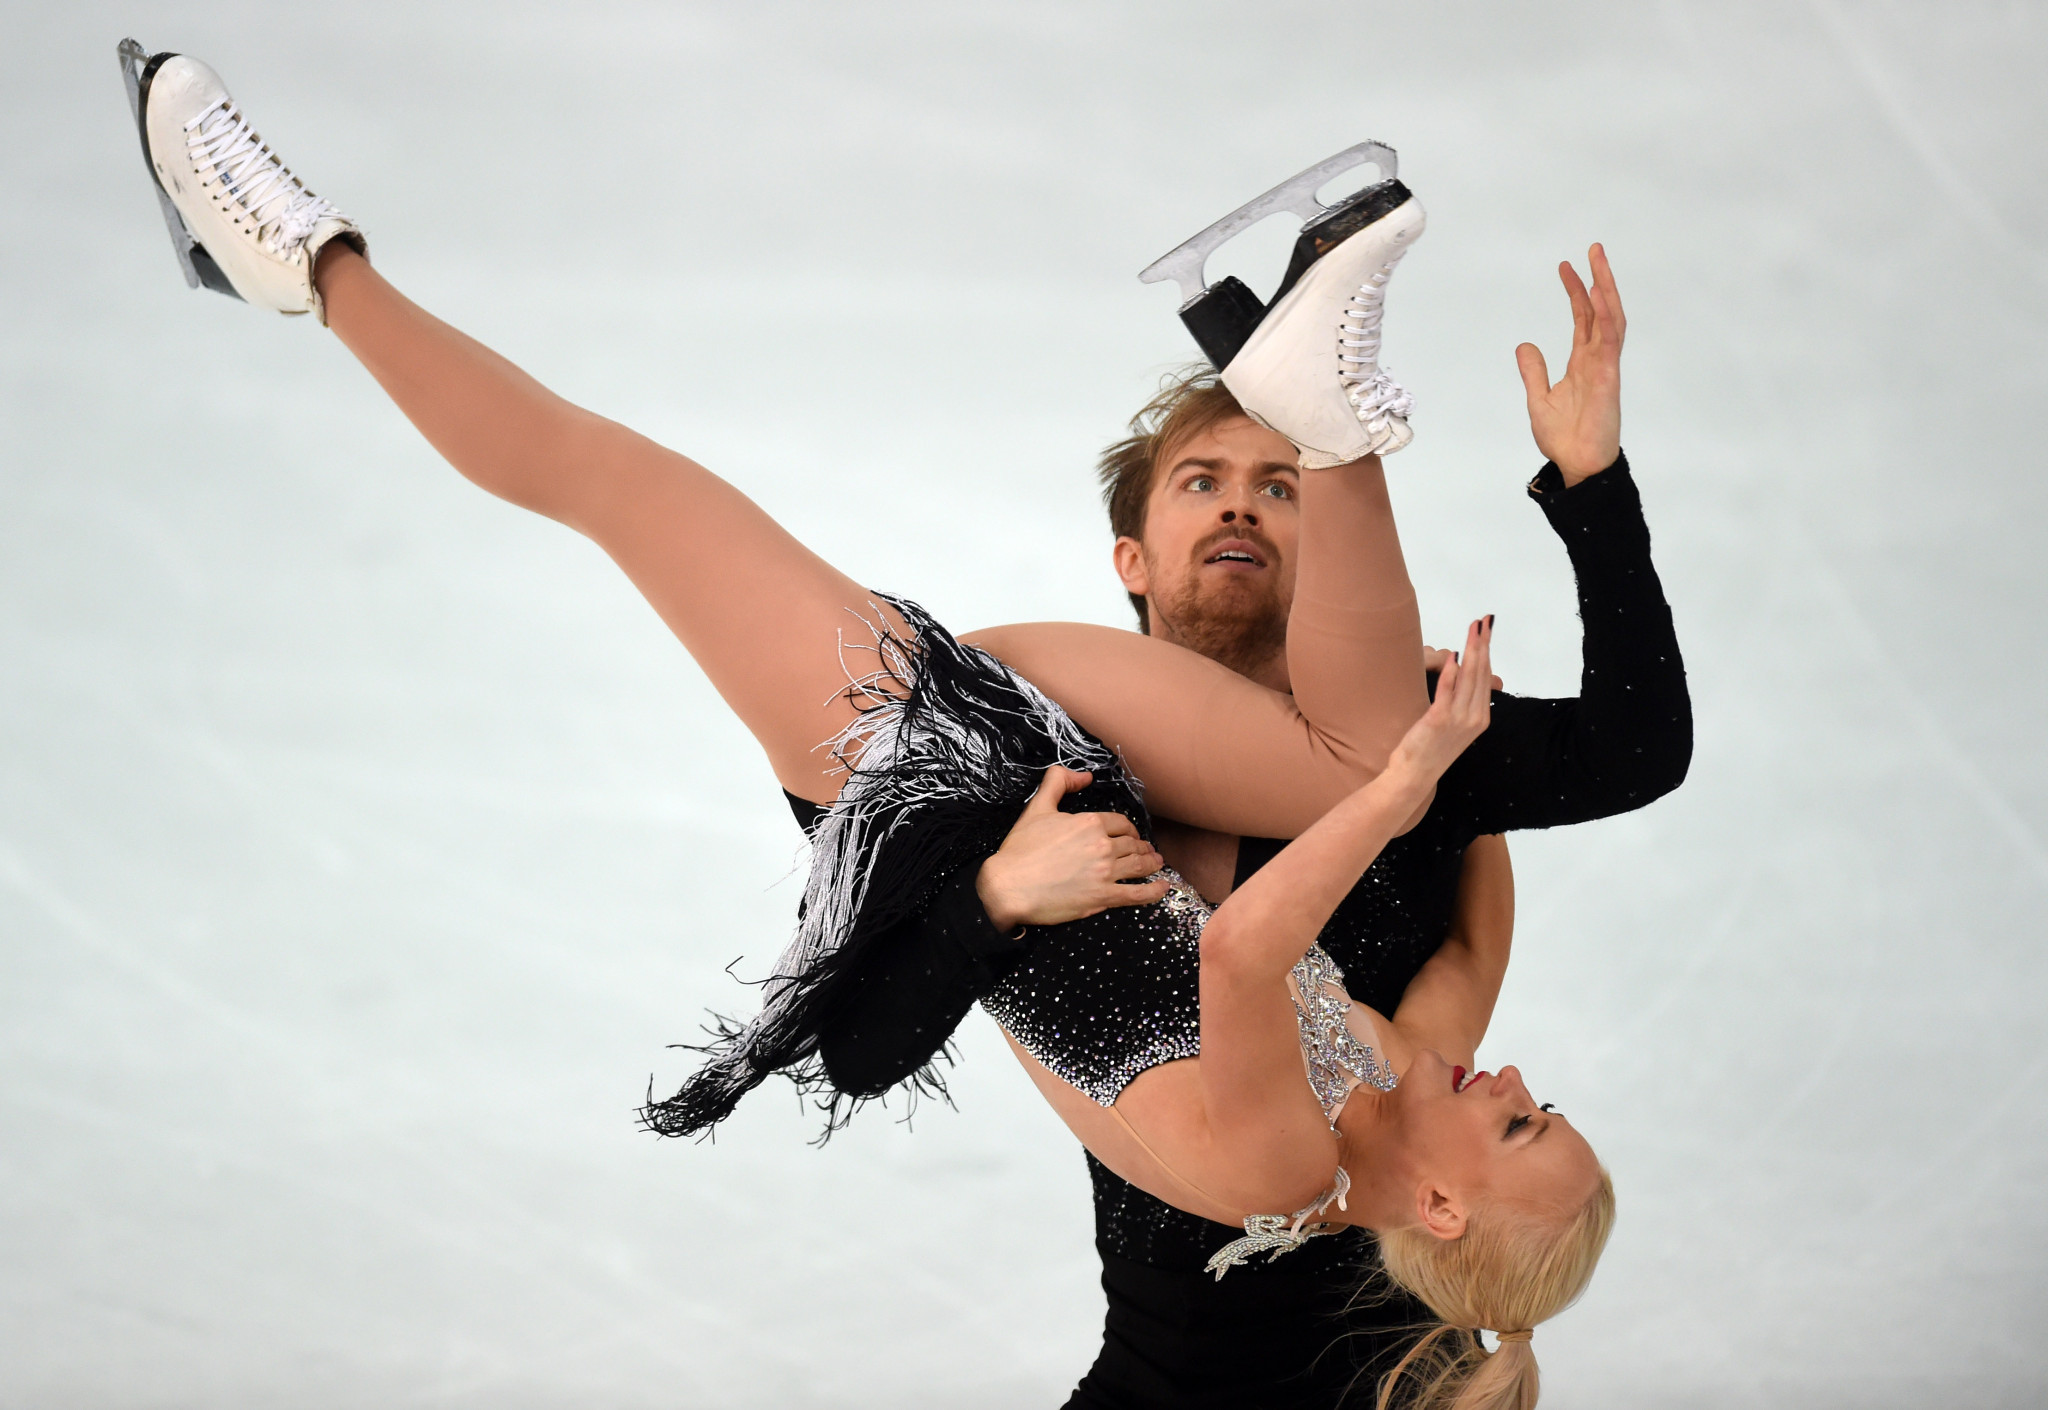 Penny Coomes and Nicholas Buckland scored a personal best today ©Getty Images